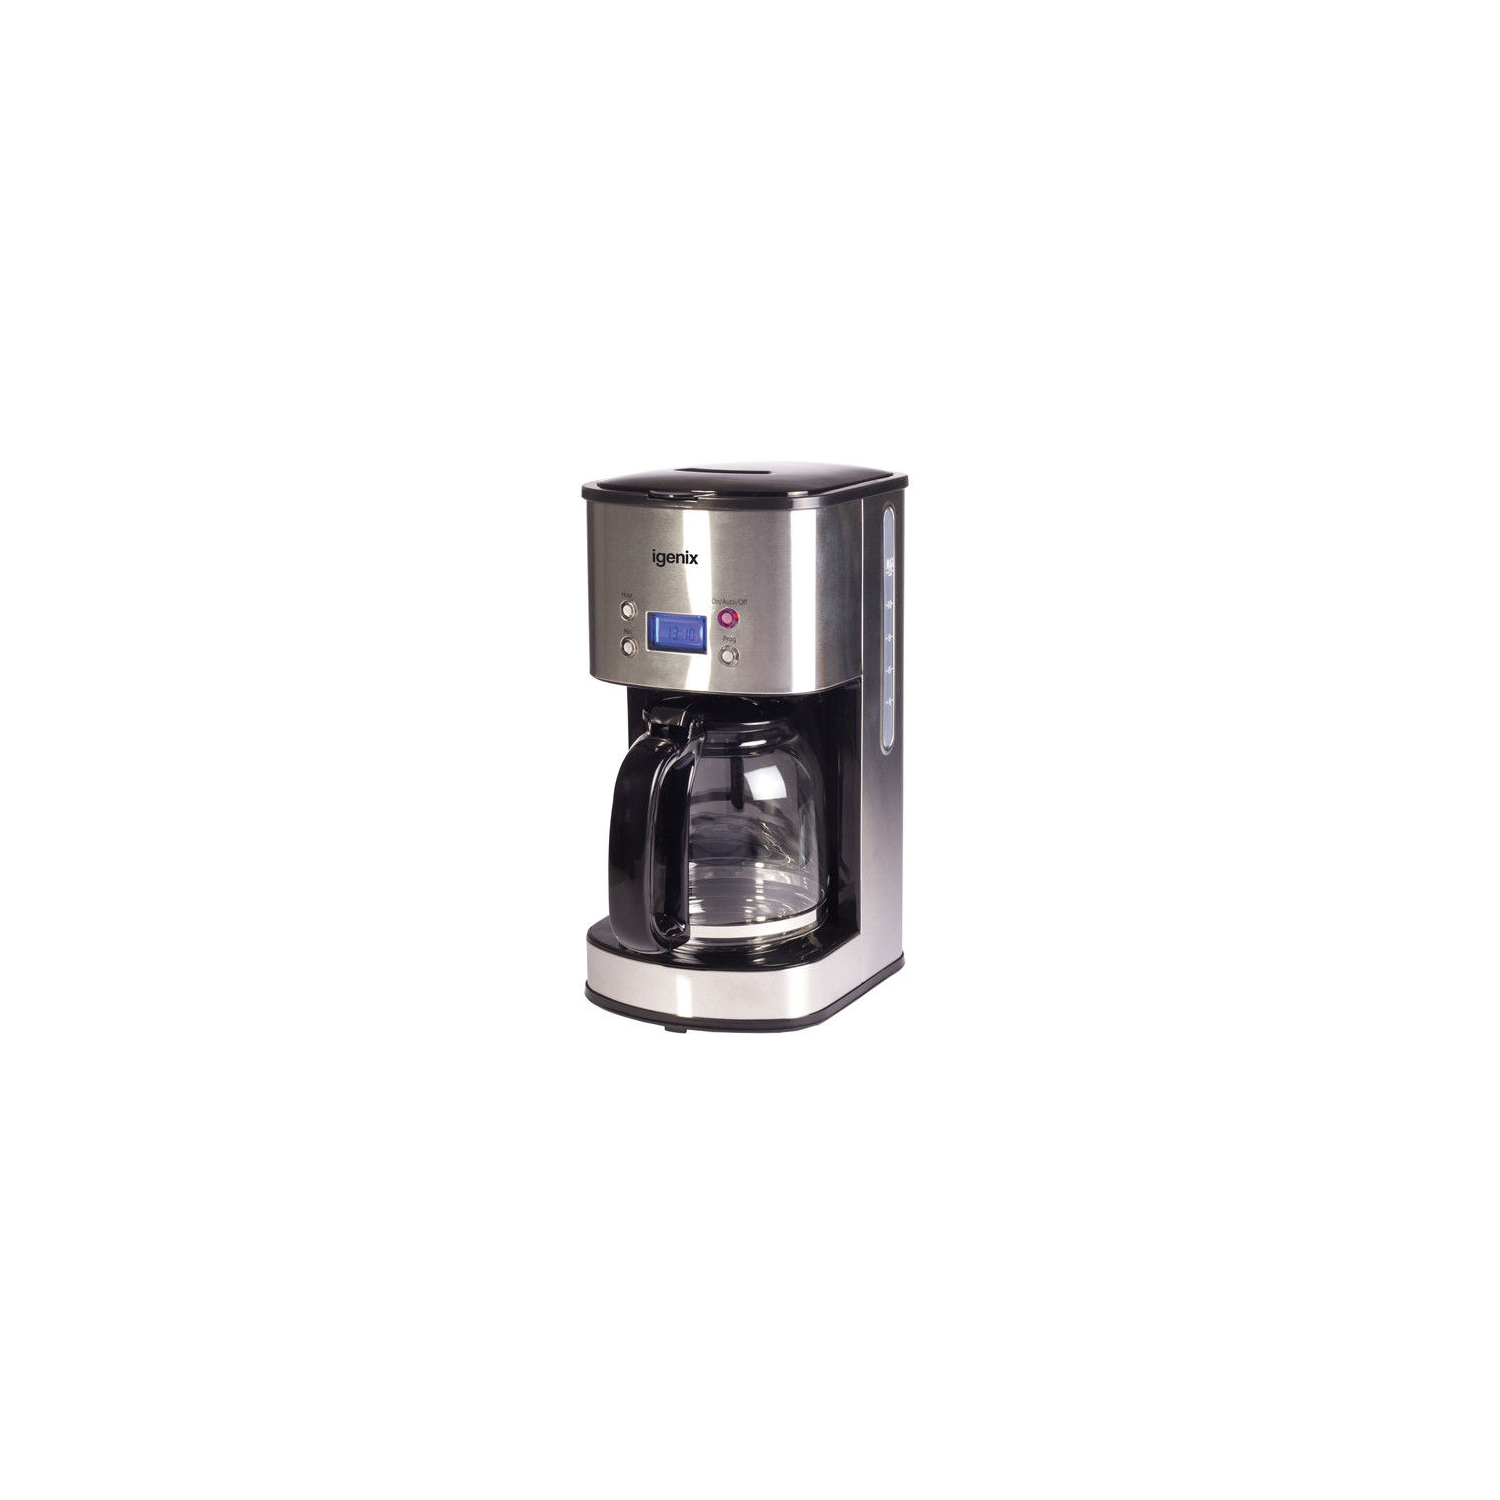 Igenix IG8250 coffee maker - 0